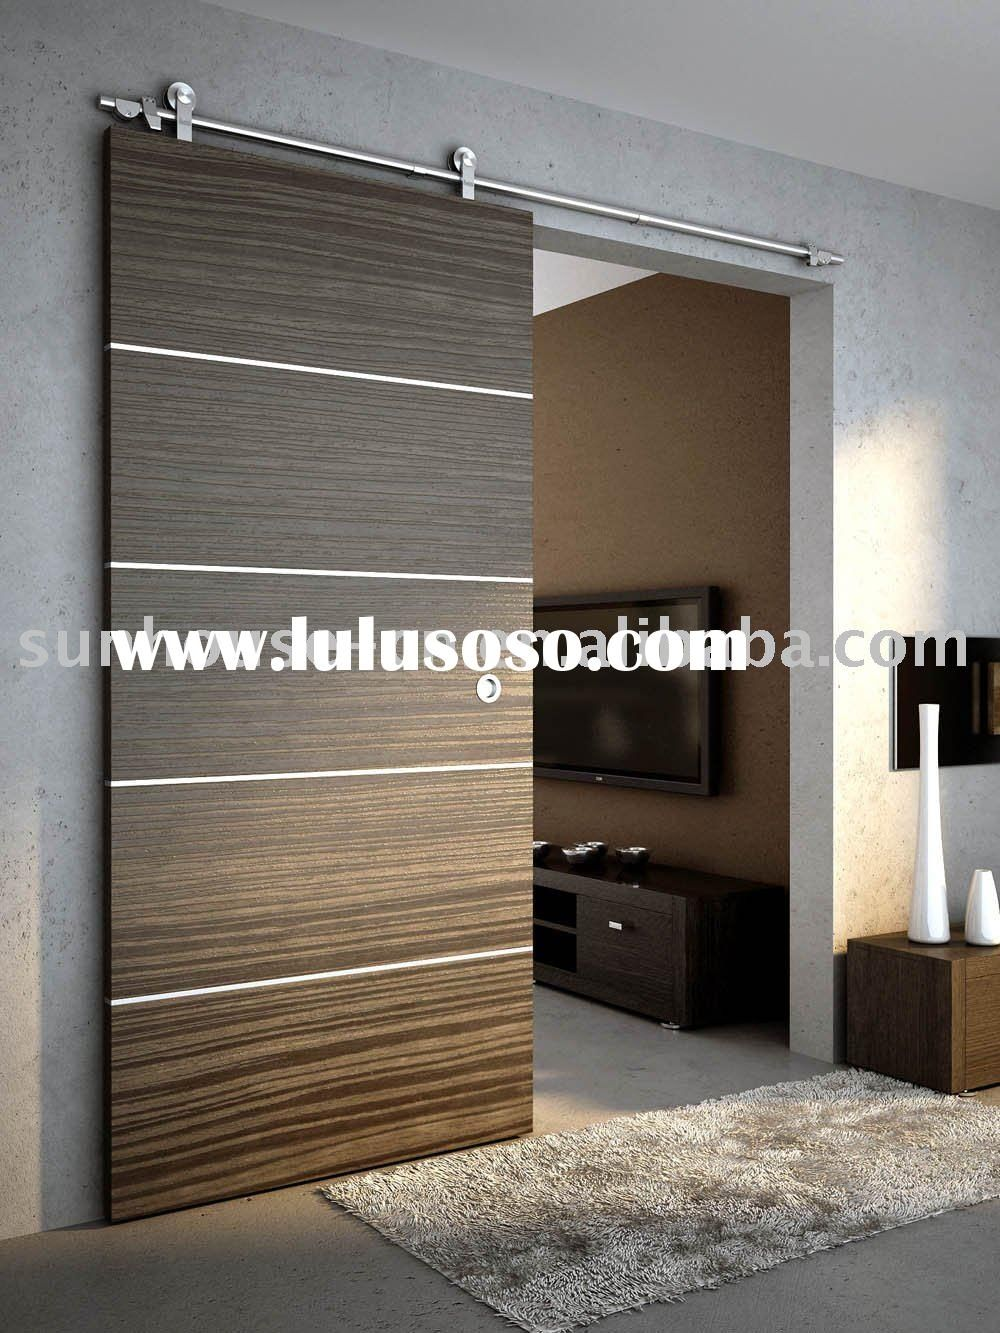 Wood sliding door sliding door fitting